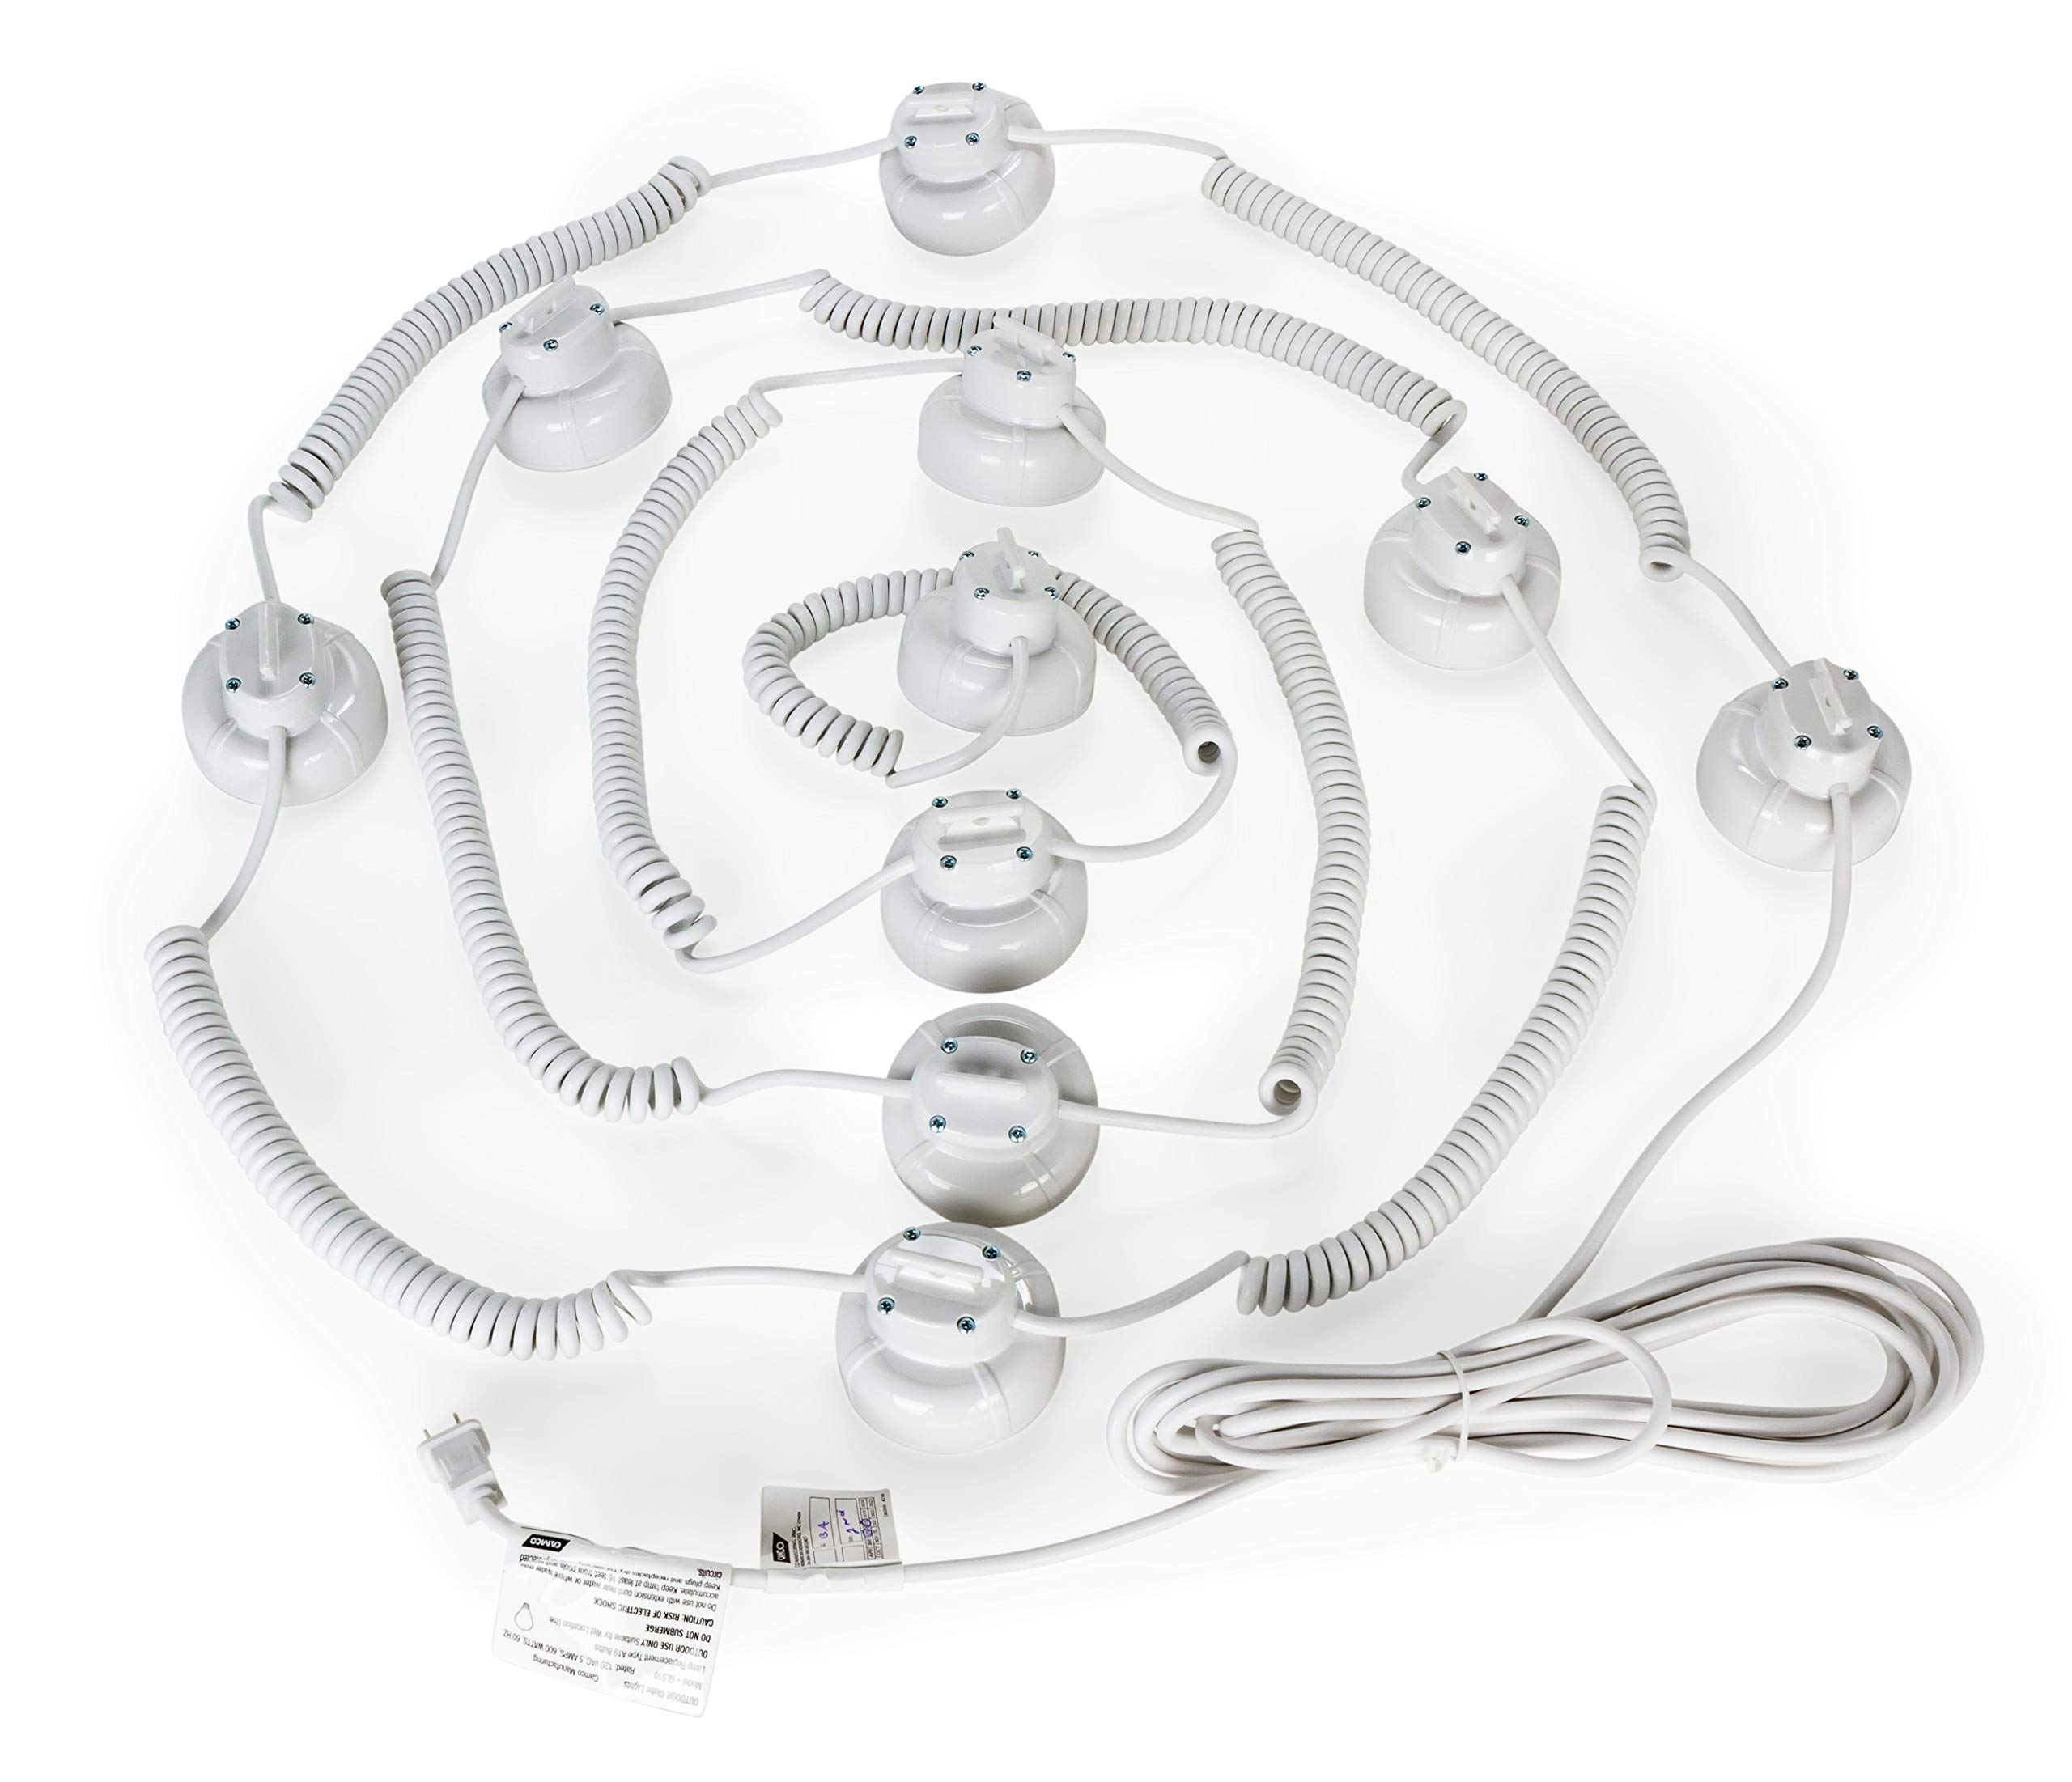 Camco 42750 Decorative RV Awning Globe Lights - 10 Multicolor Globes on White Wire,  Fits Directly into Your RV Awning Track, Great  for Outdoor Events by Camco (Image #10)